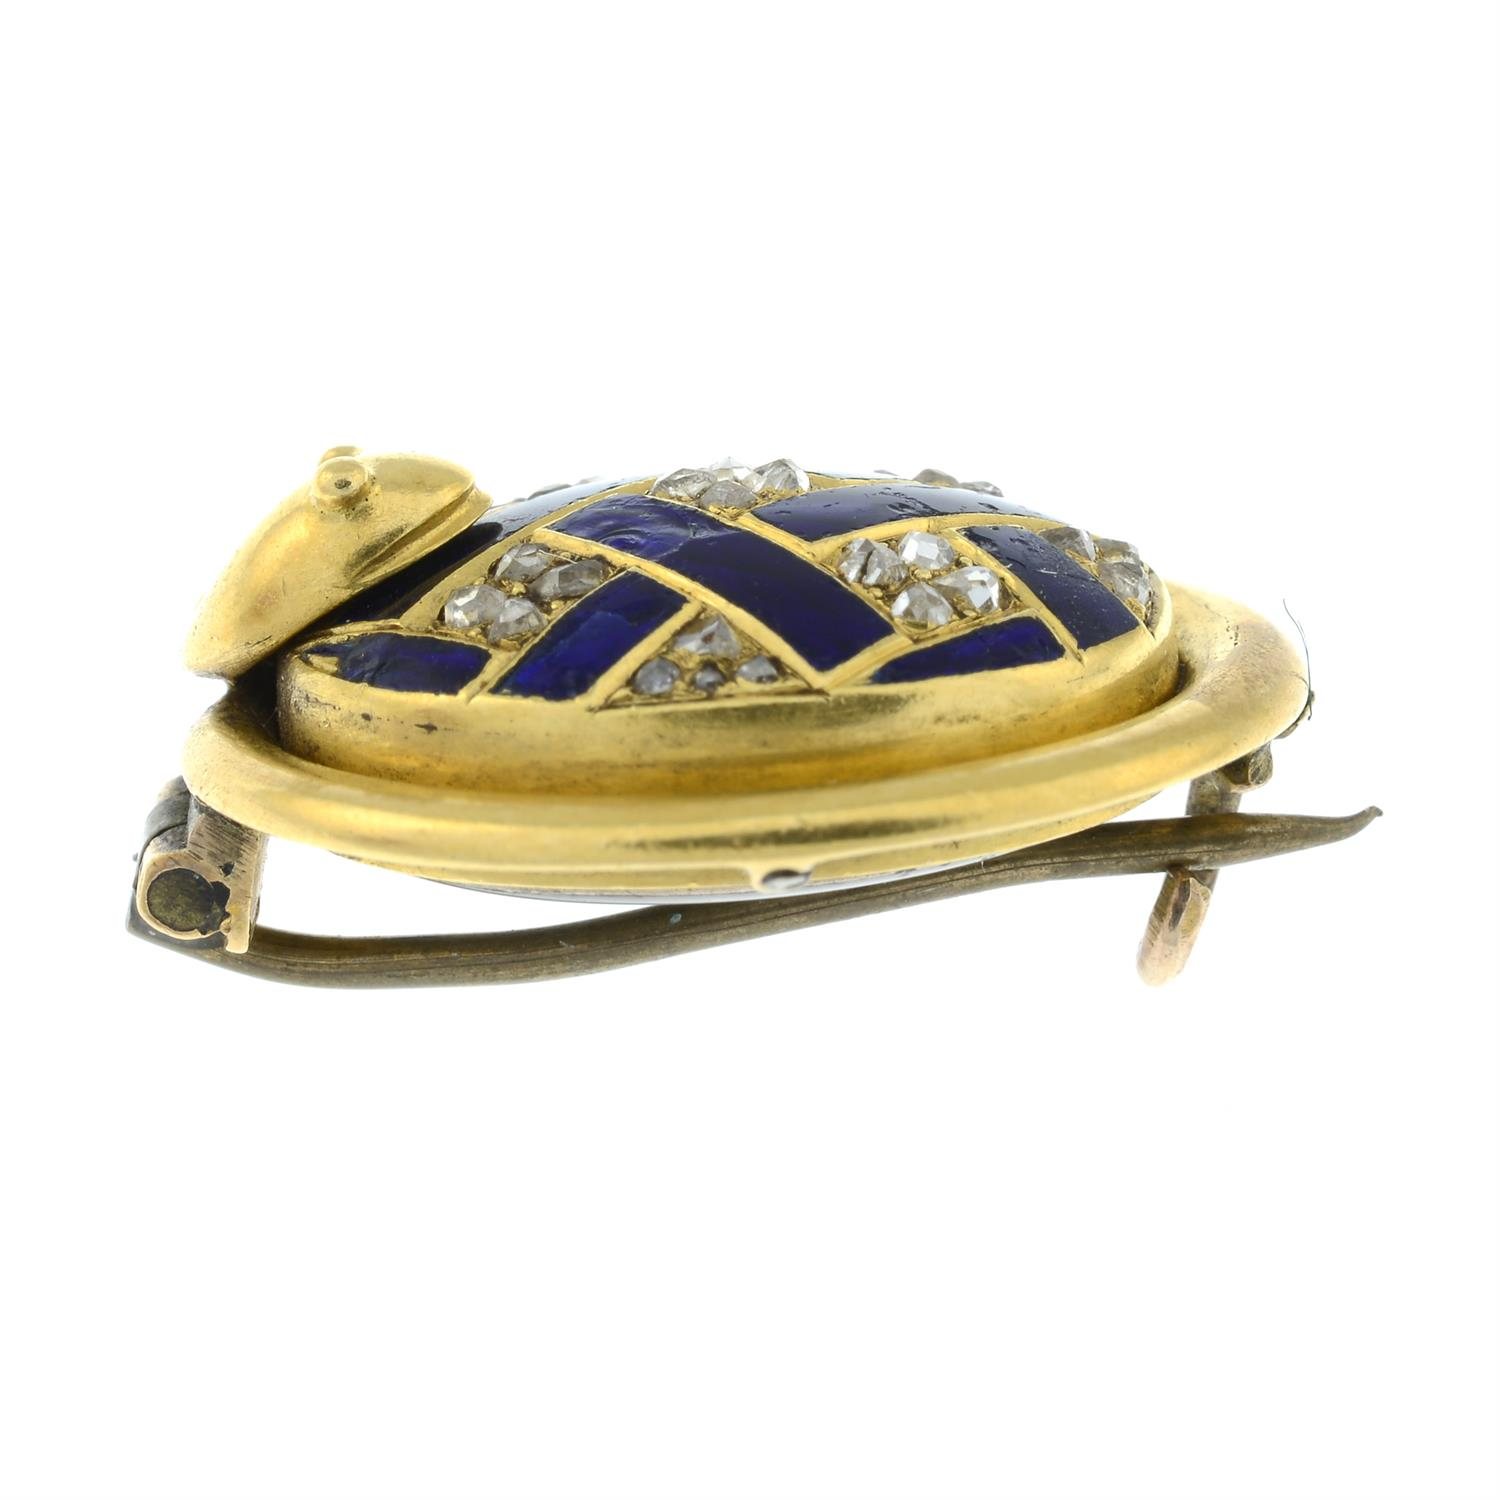 A 19th century gold rose-cut diamond and blue enamel lattice brooch, with snake surround and locket - Image 4 of 5